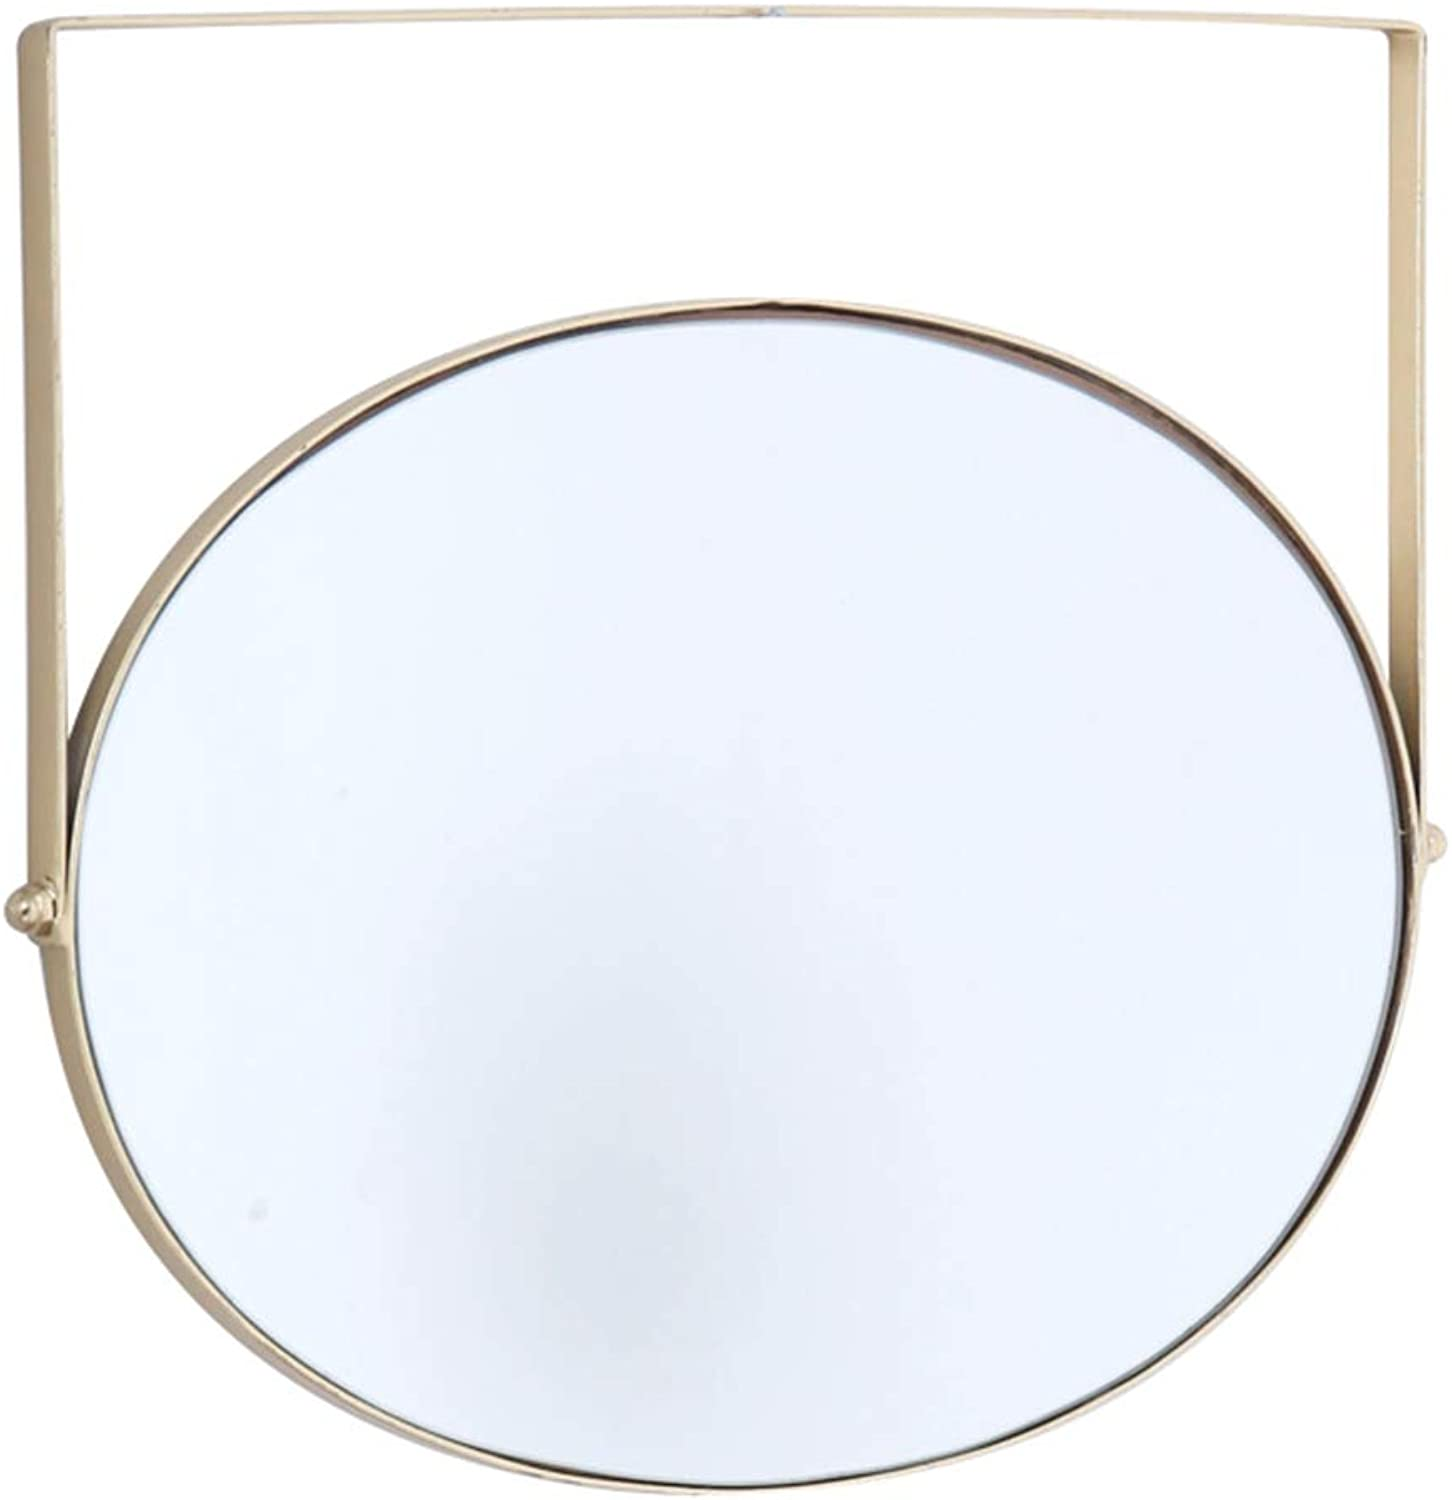 YANZHEN Mirror Wall-Mounted redatable Industrial Wind Bathroom Oval Ultra-Clear Simple European Style Anti-Rust Iron (color   gold, Size   48x43cm)